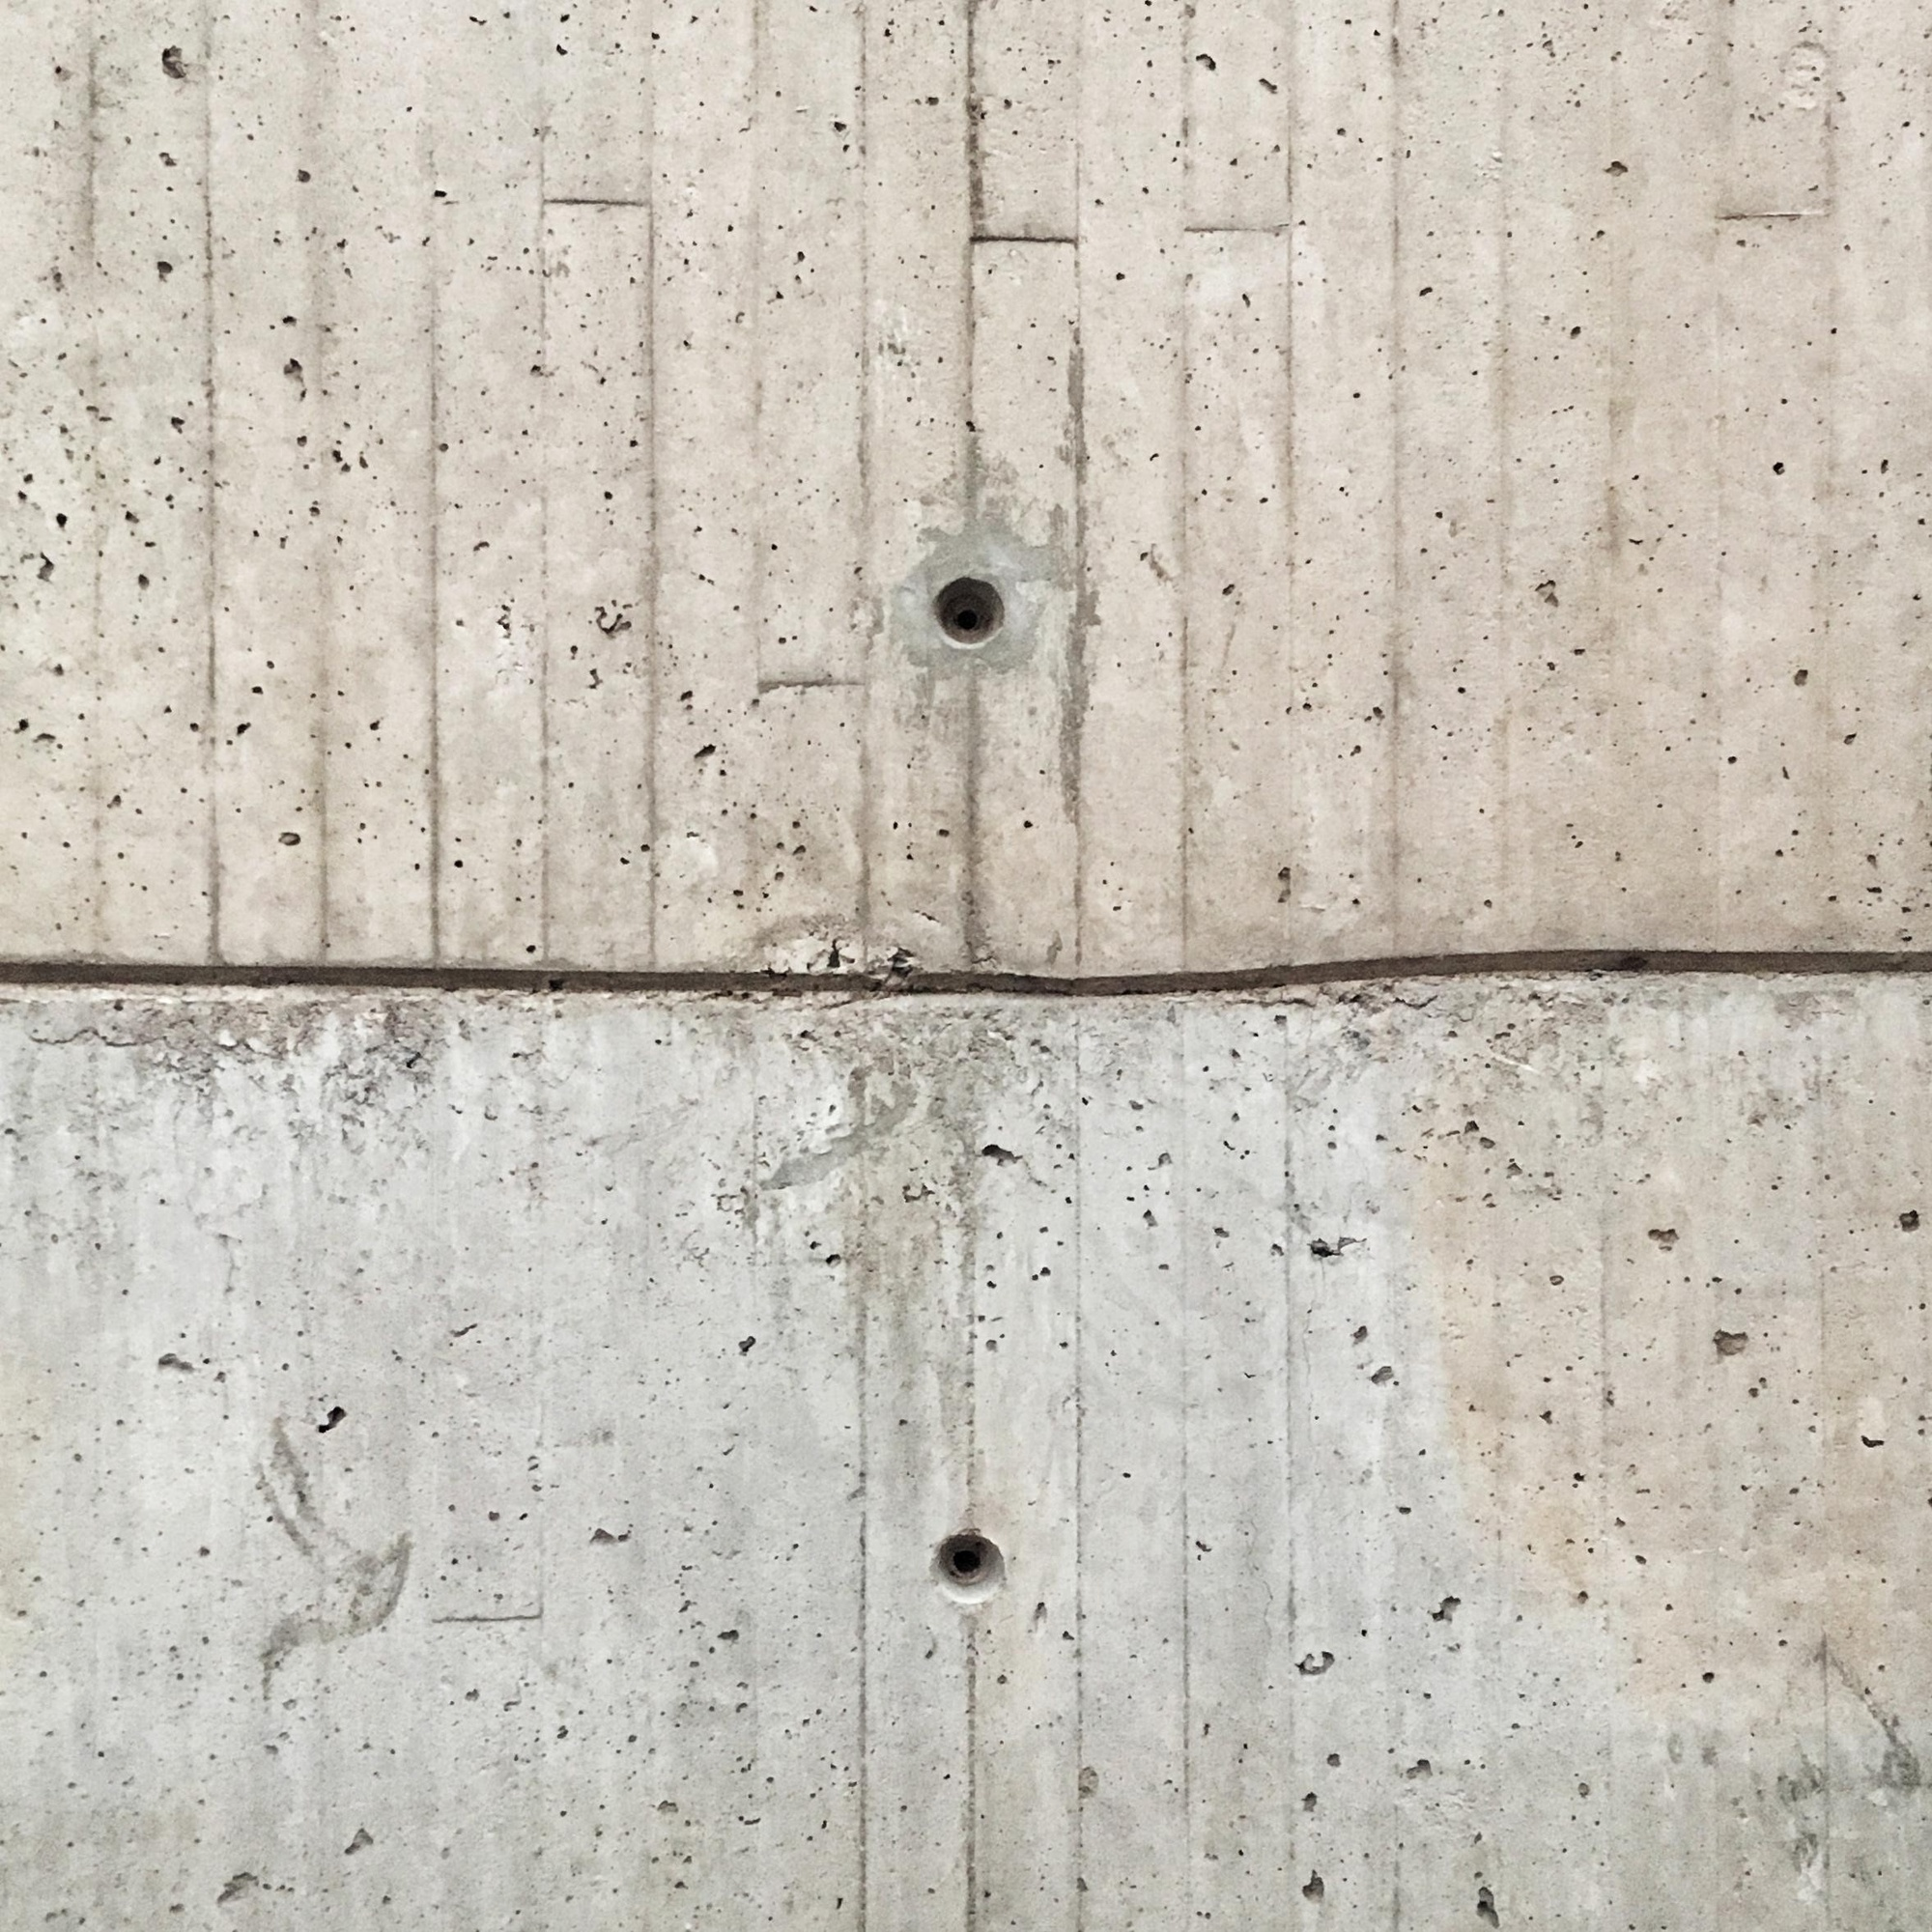 Detail of a concrete wall at the Yale Center for British Art